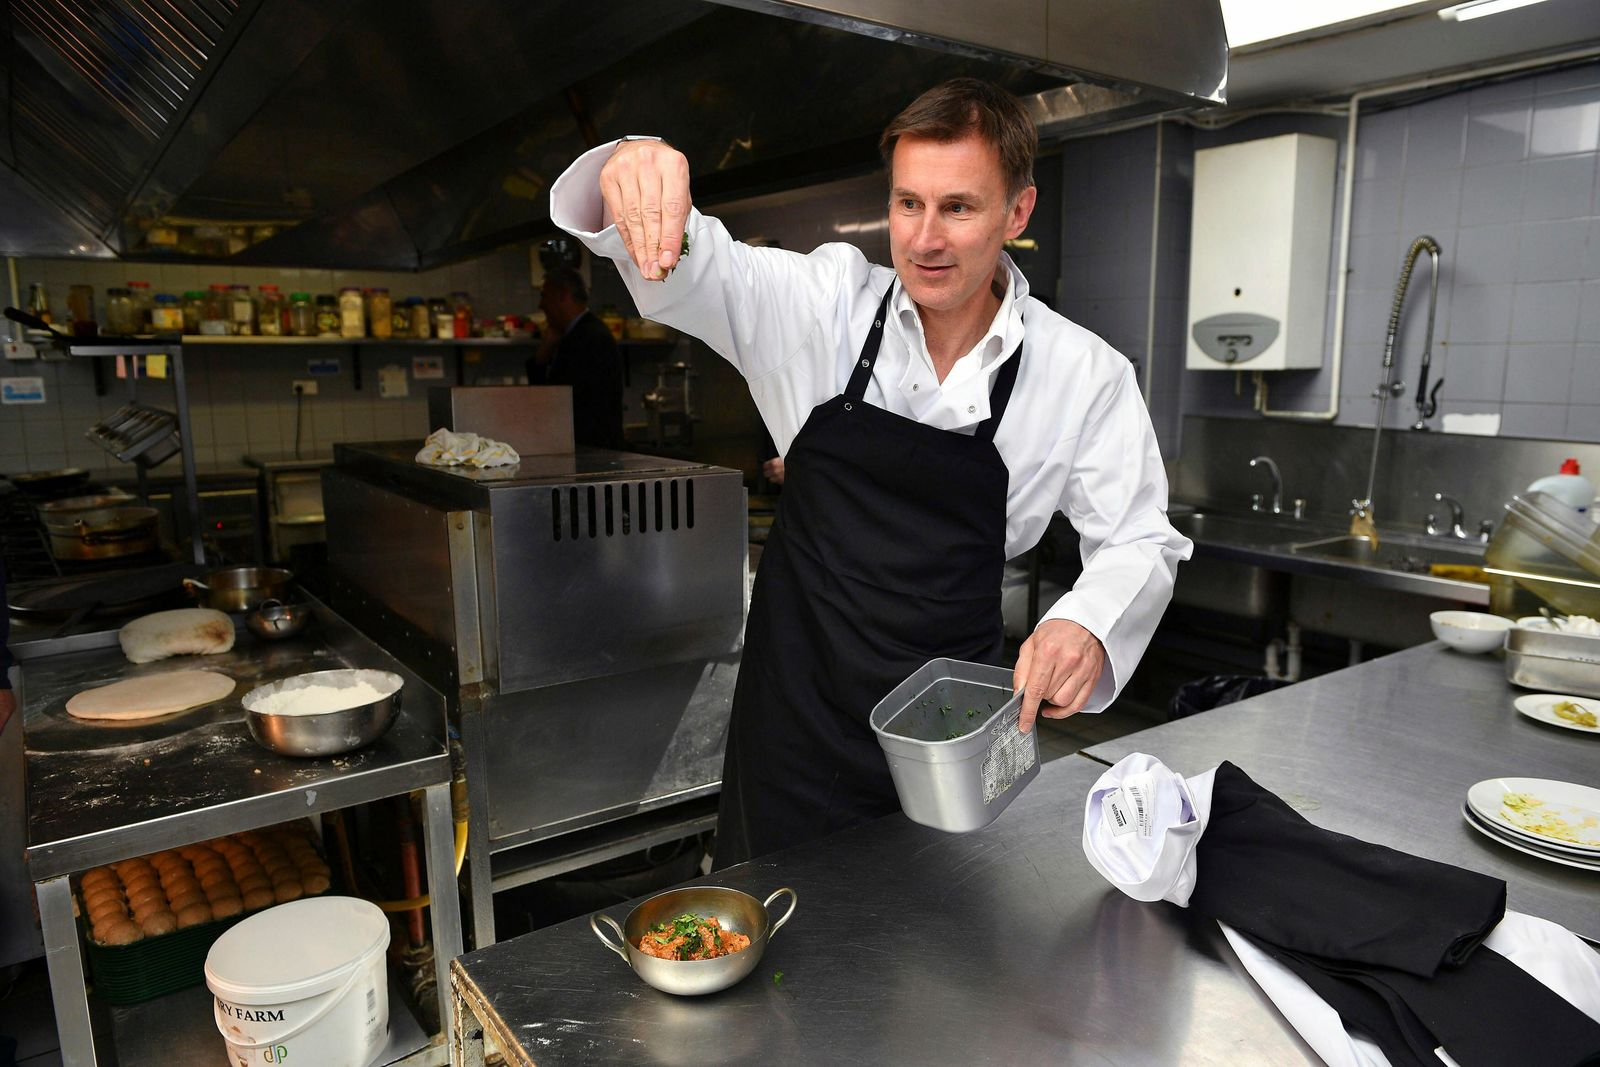 Conservative Party leadership candidate Jeremy Hunt visits Imran's Balti Restaurant ahead of the first Tory party hustings, in Birmingham, England, Saturday June 22, 2019. (Ben Birchall/PA via AP)